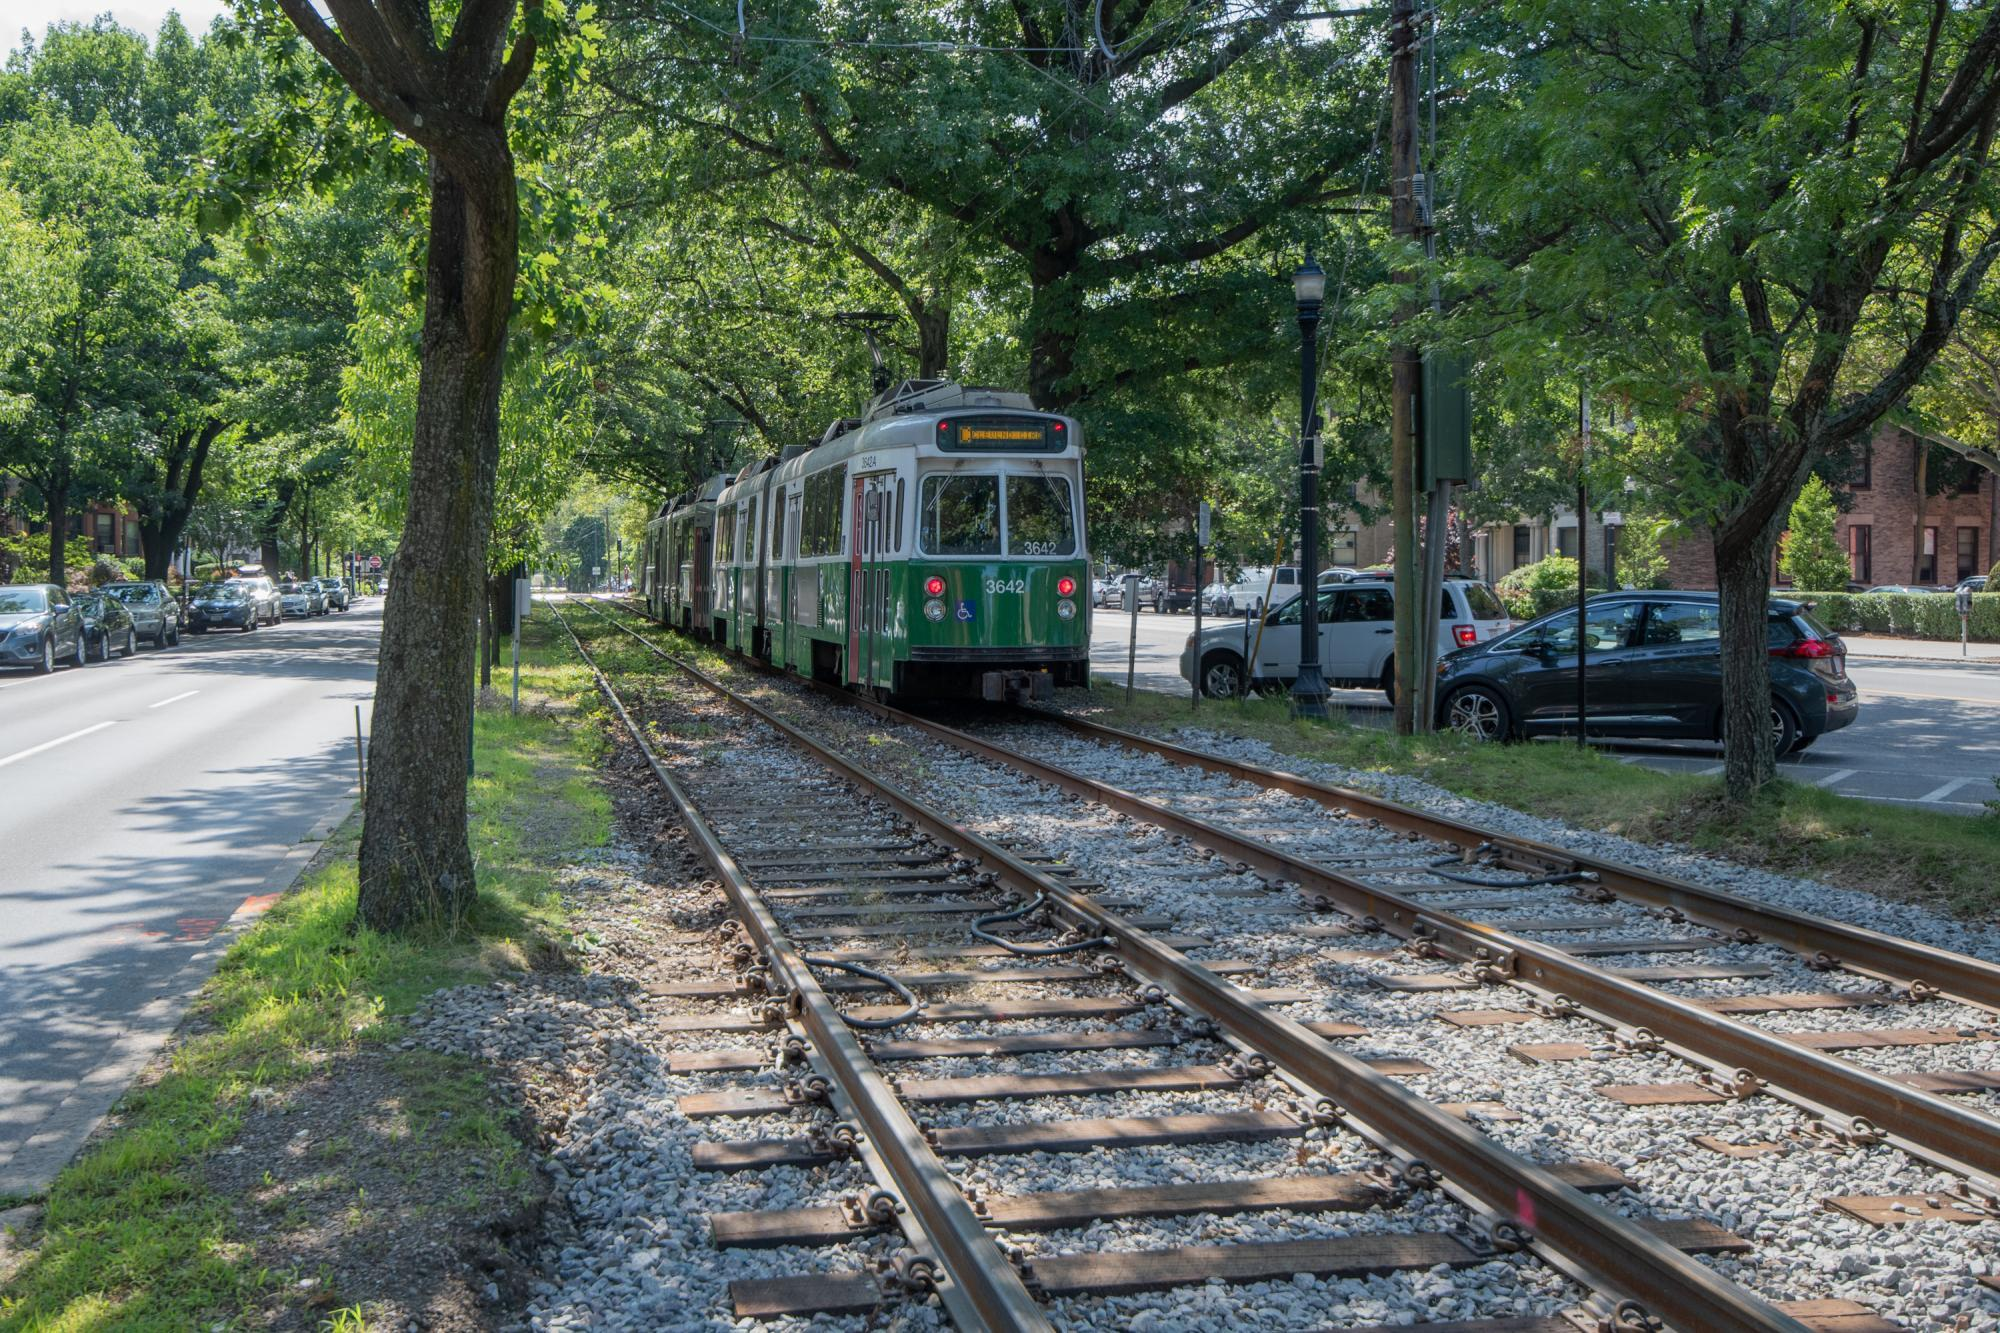 Green Line C train passing under trees in Brookline